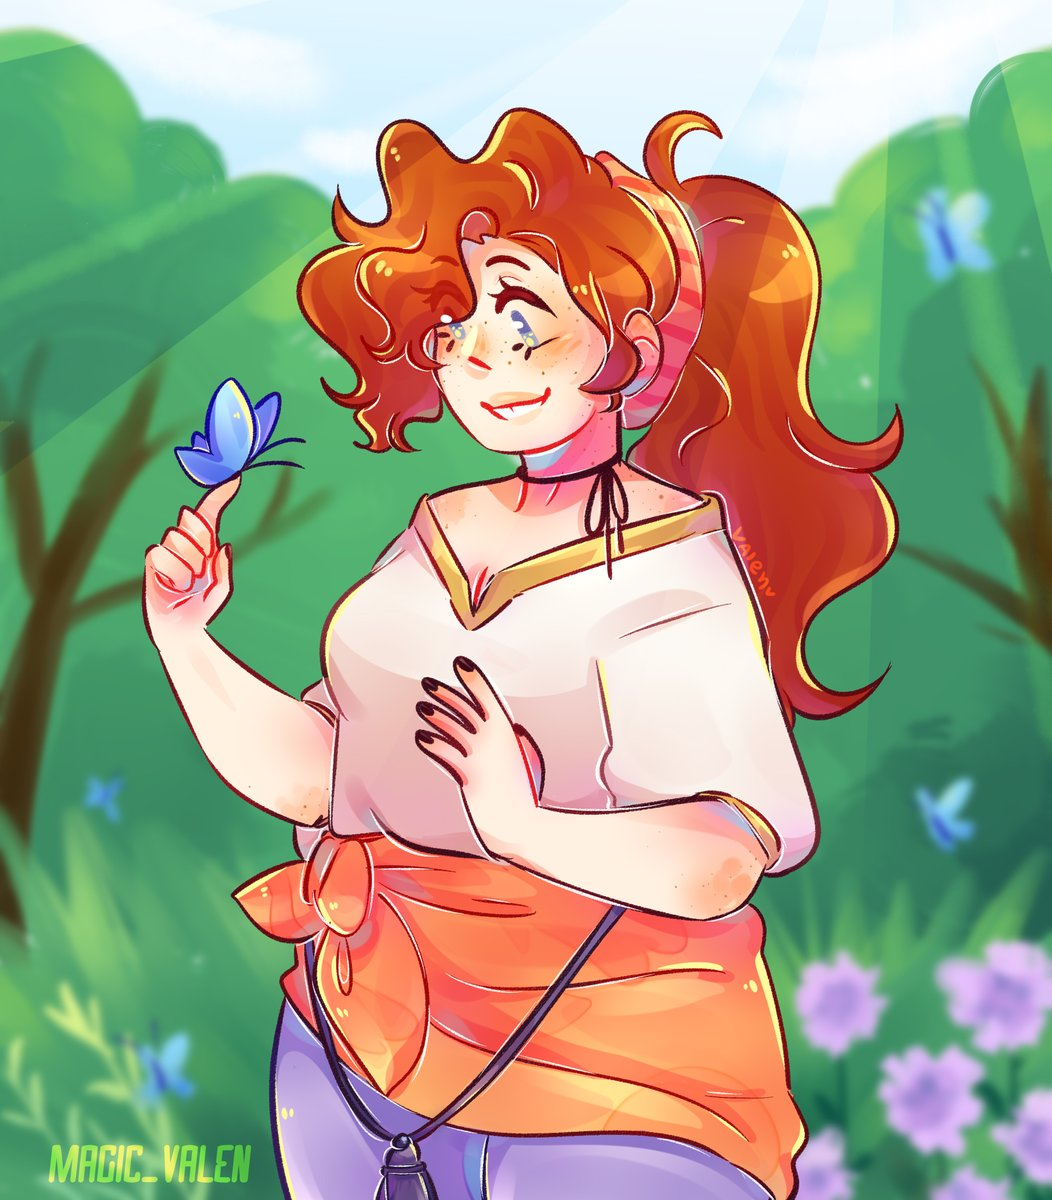 I'm so happy with the fact that her route is finally save, she deserves nothing but love ;;#thearcana #thearcanagame #portiadevorak #saveportia @thearcanagame @TheArtistHelp @ConoceArtistas @ApoyaAlArtista @dibujandopic.twitter.com/k8S1GrUith